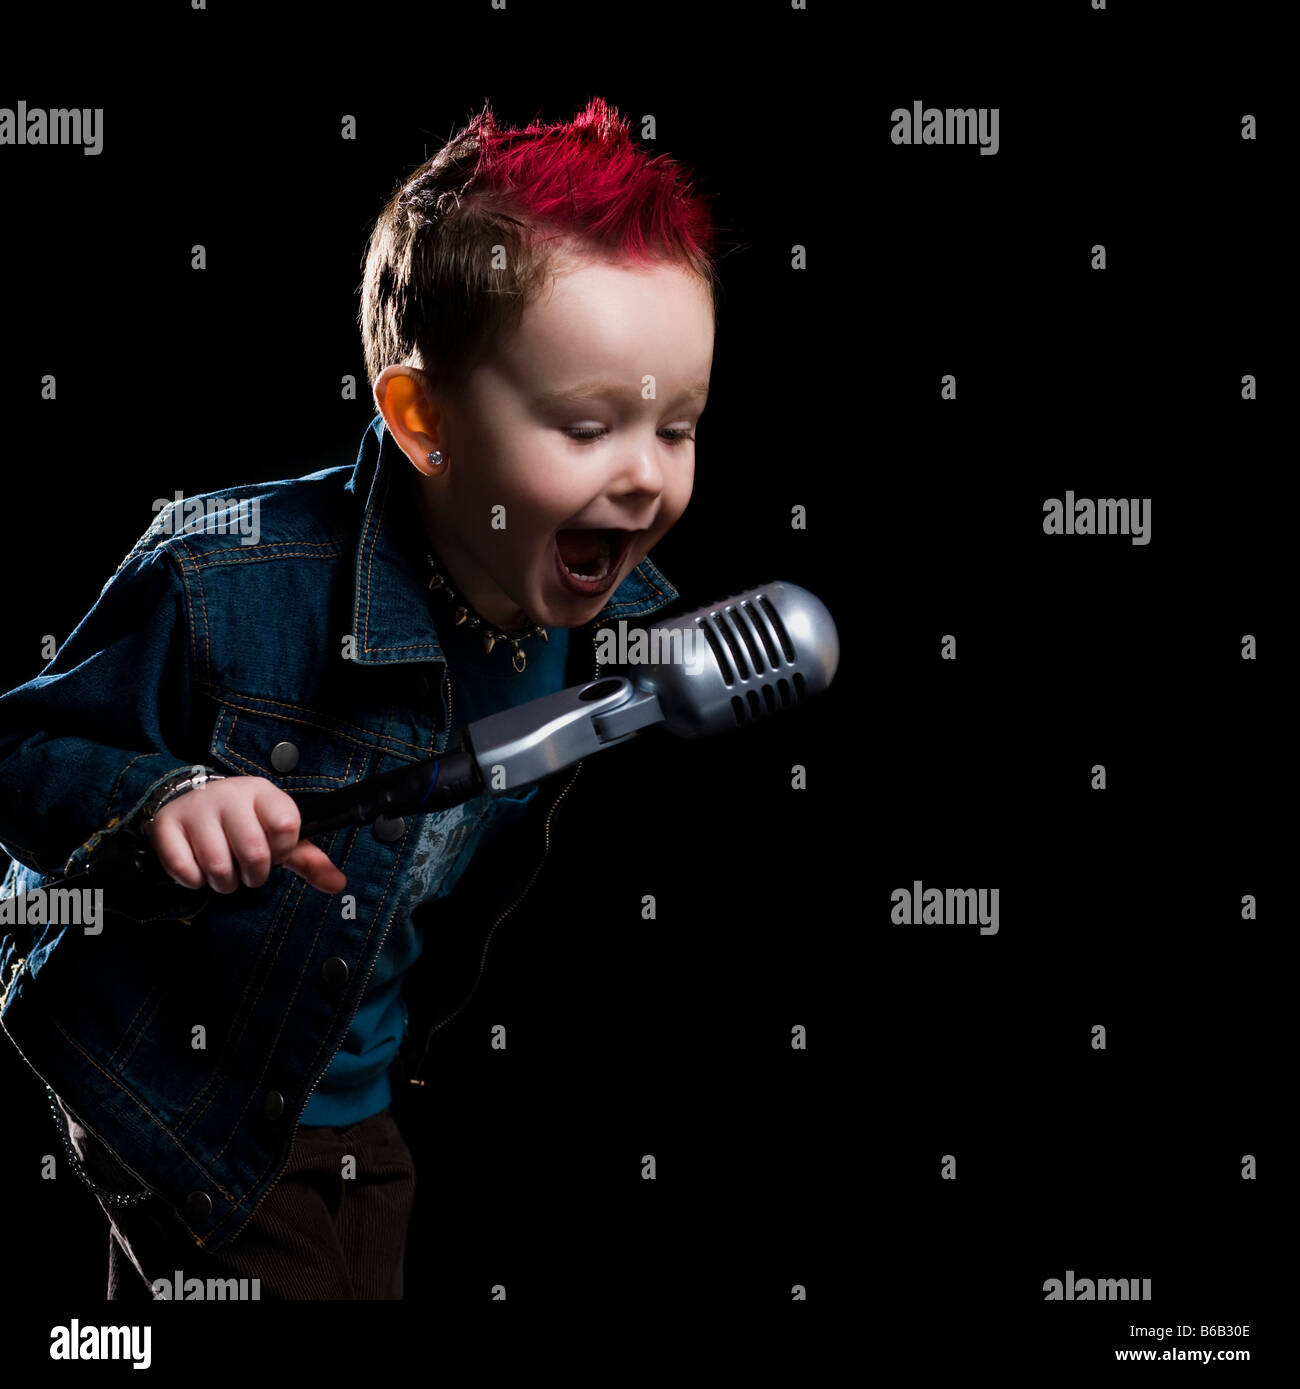 little boy singing into a microphone - Stock Image